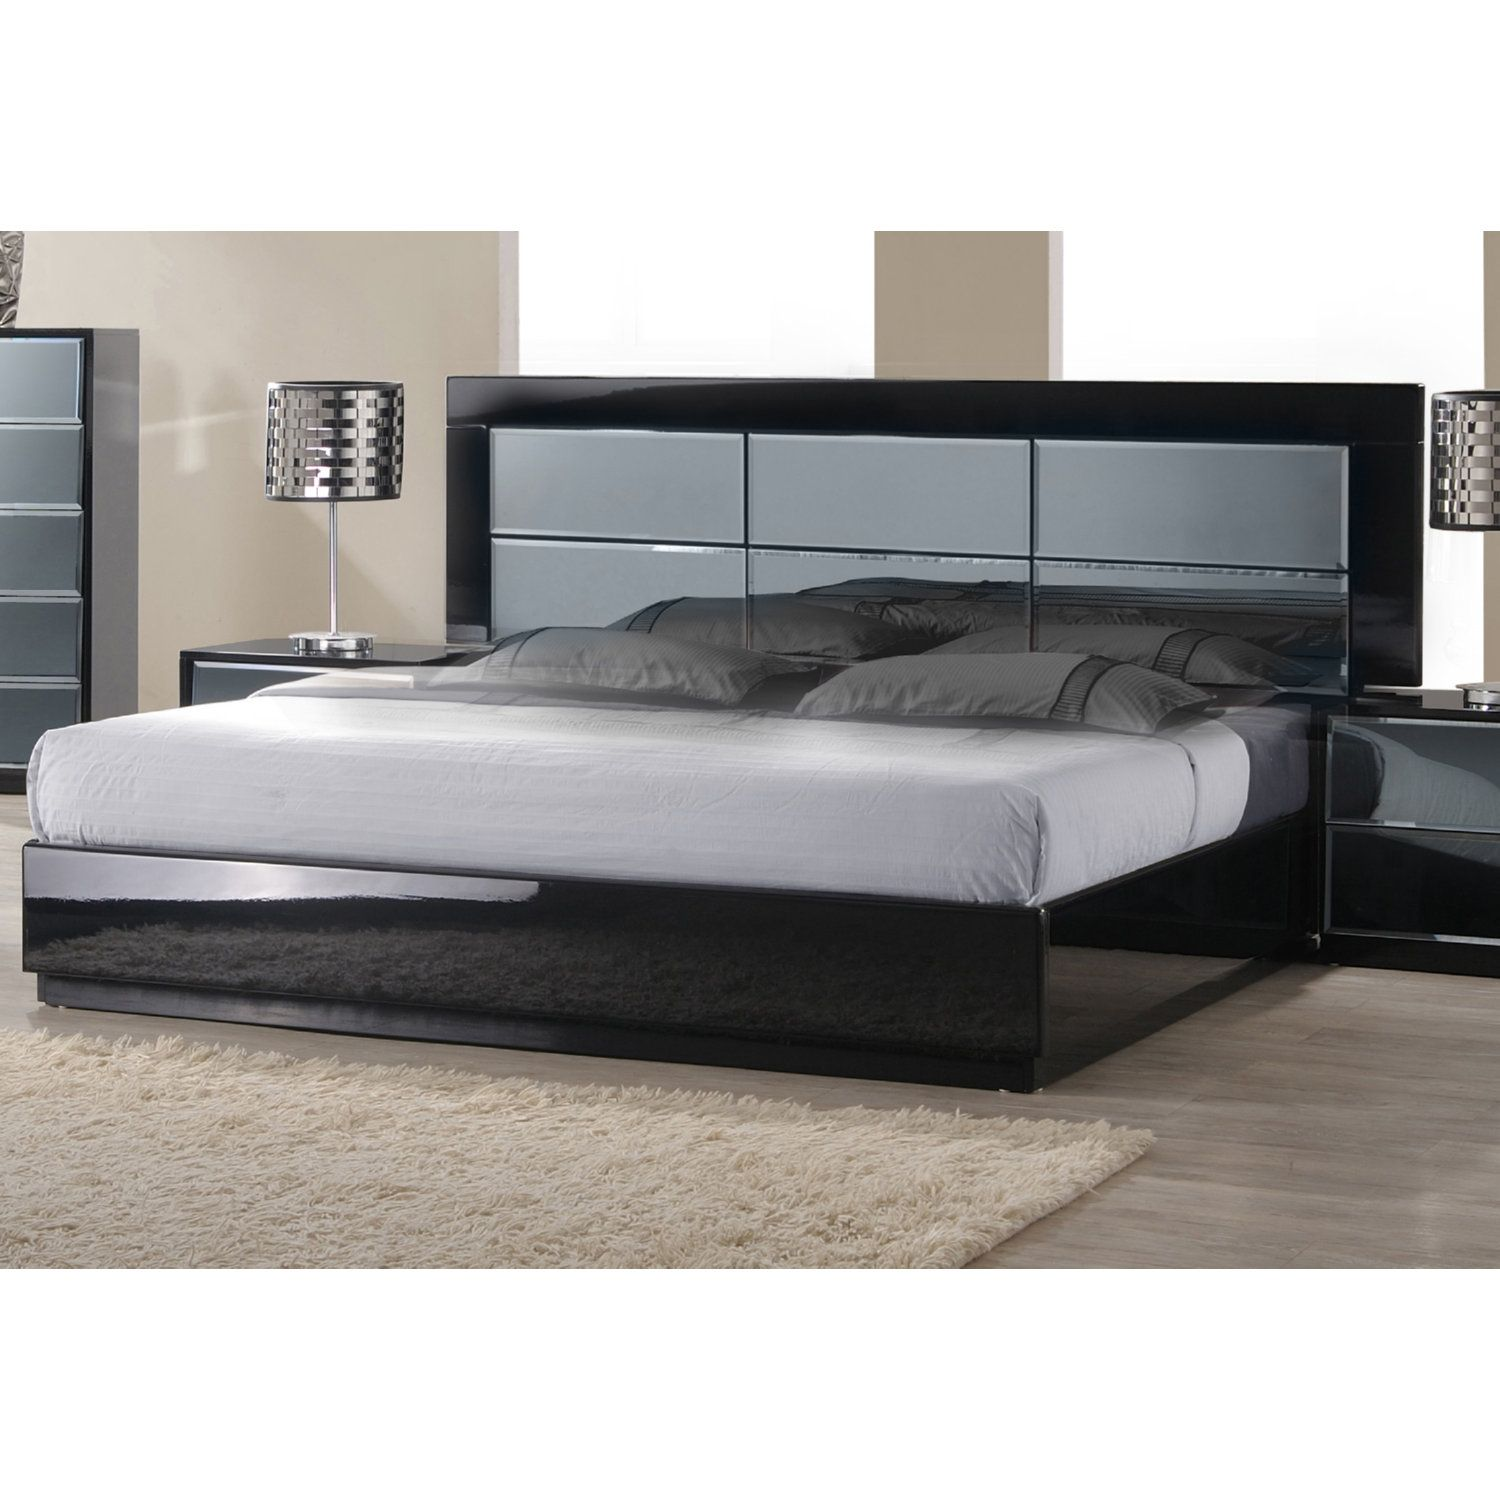 Chintaly Imports VENICE-BED-QN-FBSR-HB-SLT Venice Queen Bed High Gloss Black w/ Blue Glass